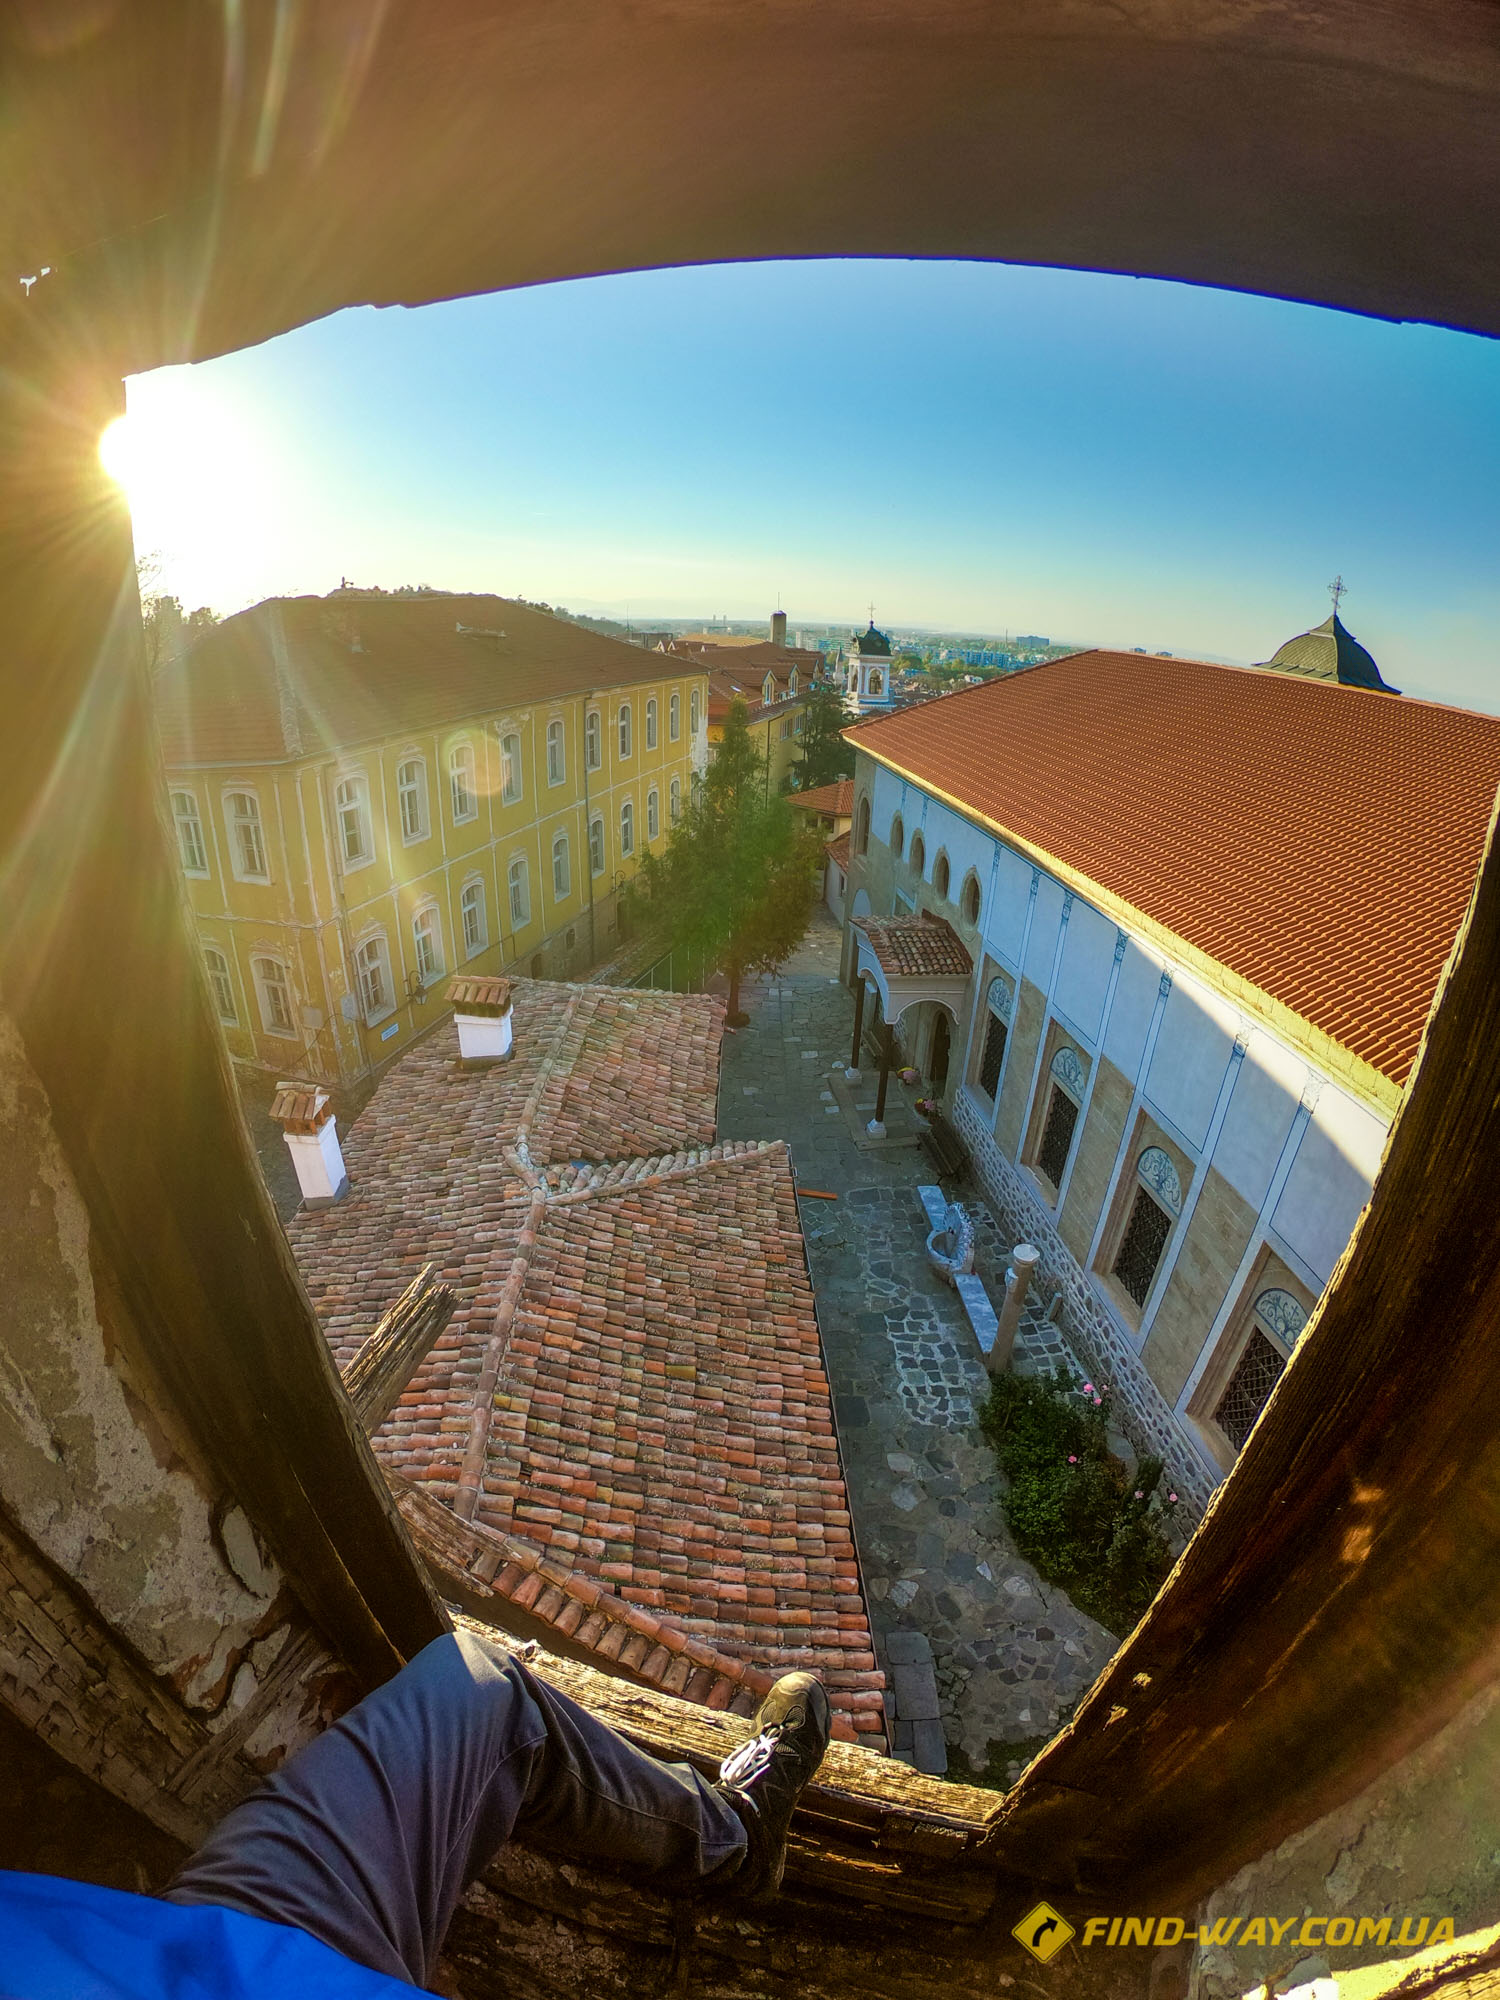 travel with findway crazy ukrainians abandoned places bulgaria plovdiv